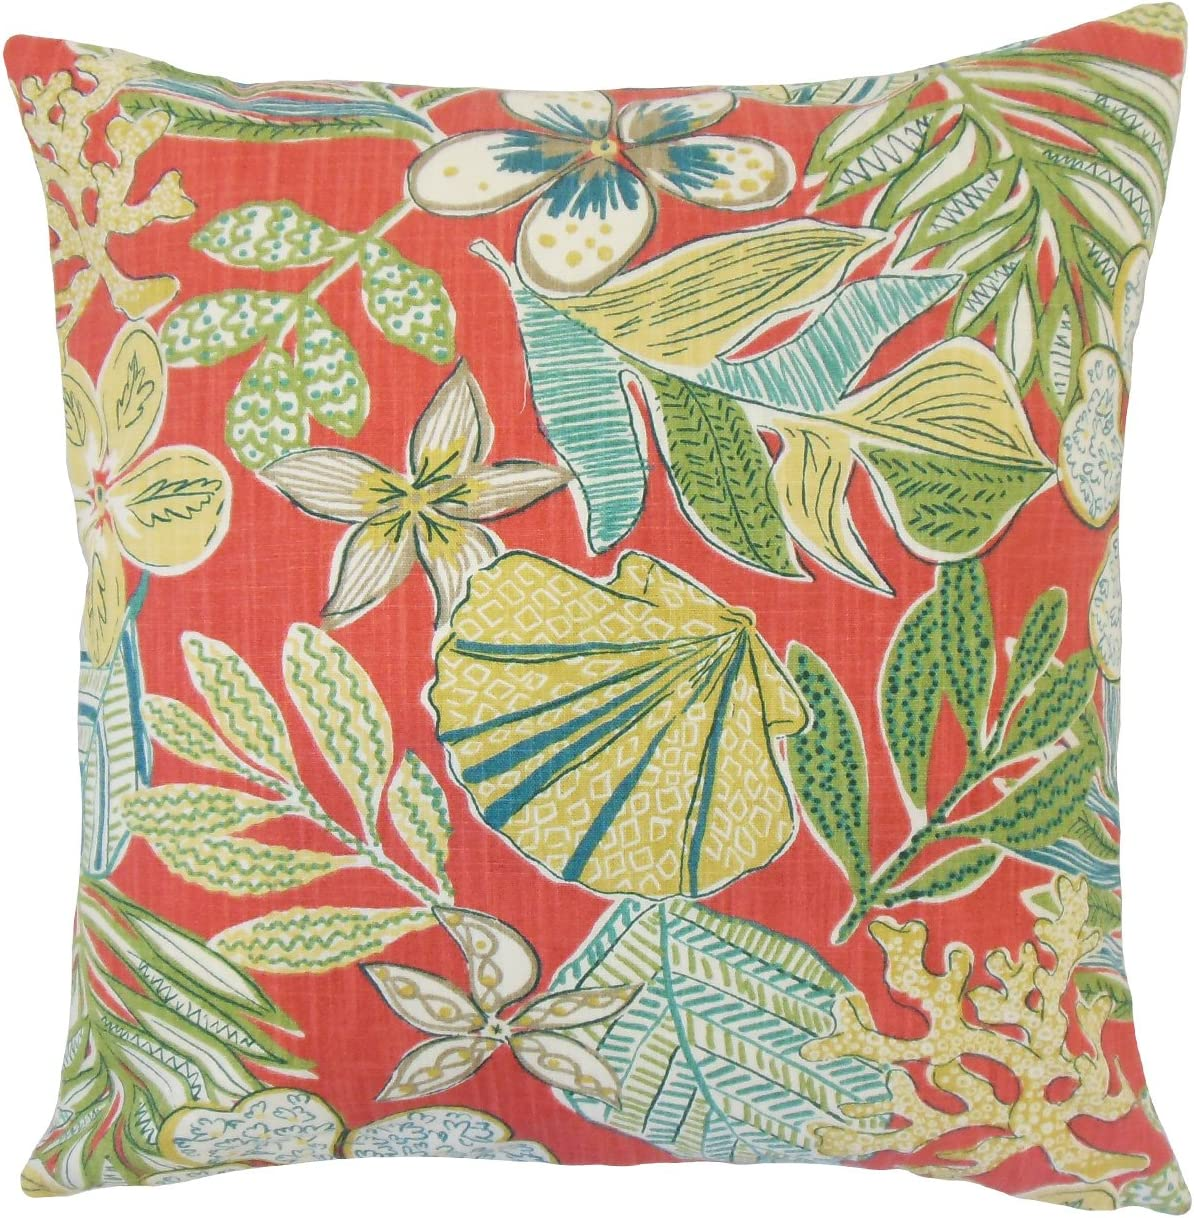 Super sale The Pillow Collection Felice Max 85% OFF P18-ROB-MIXEDMOTIFS-CORAL-C100 Flor